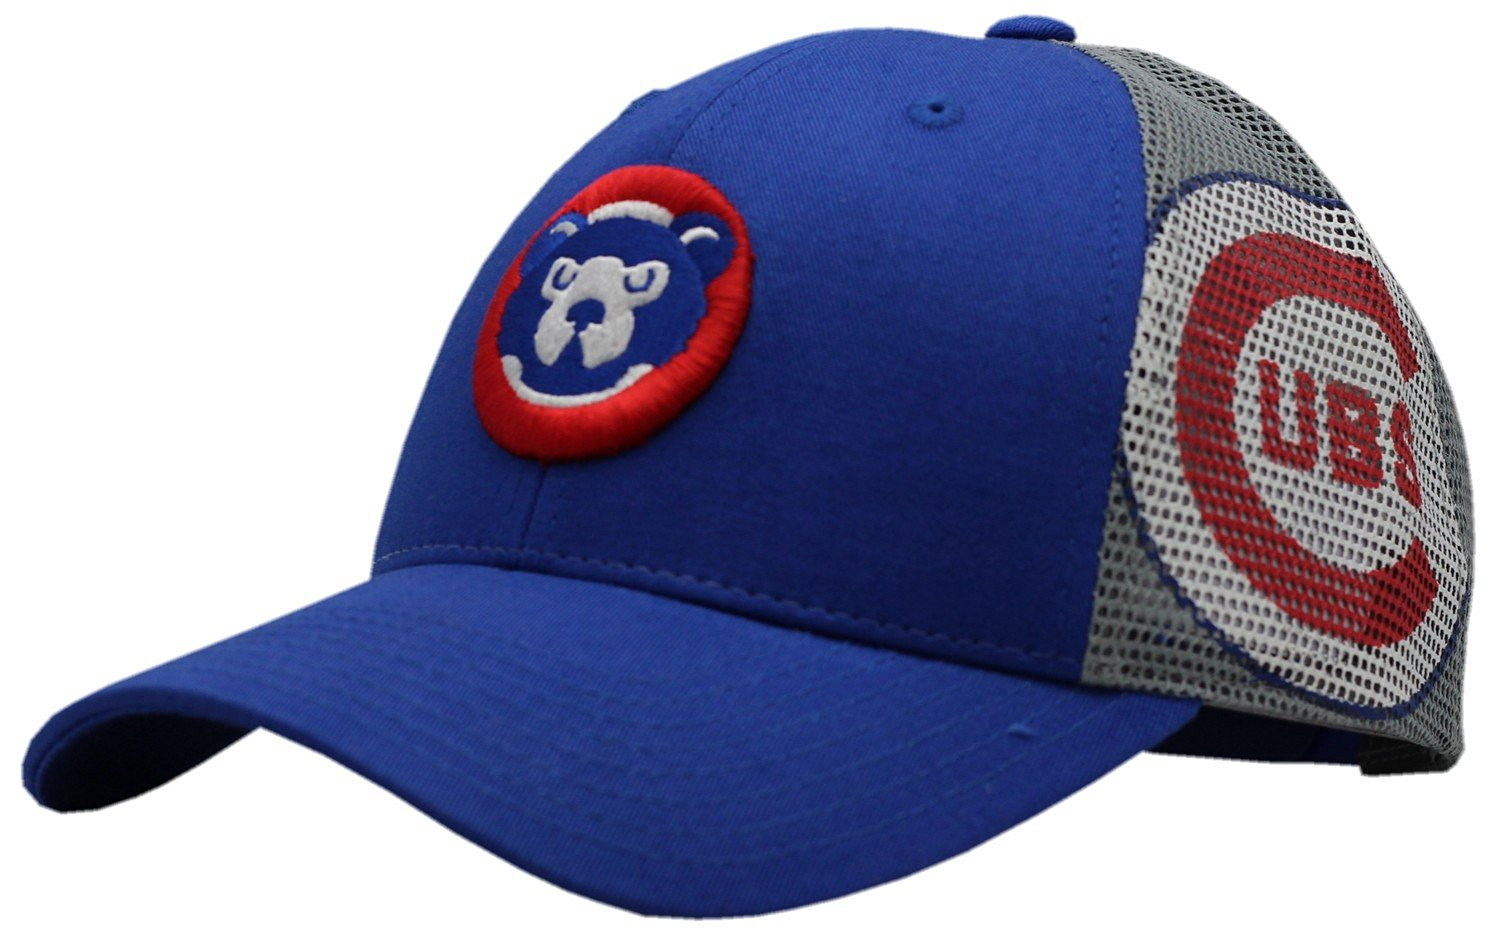 info for 805e7 1b1de Get Quotations · Chicago Cubs MLB Two Tone Mesh Snapback Hat